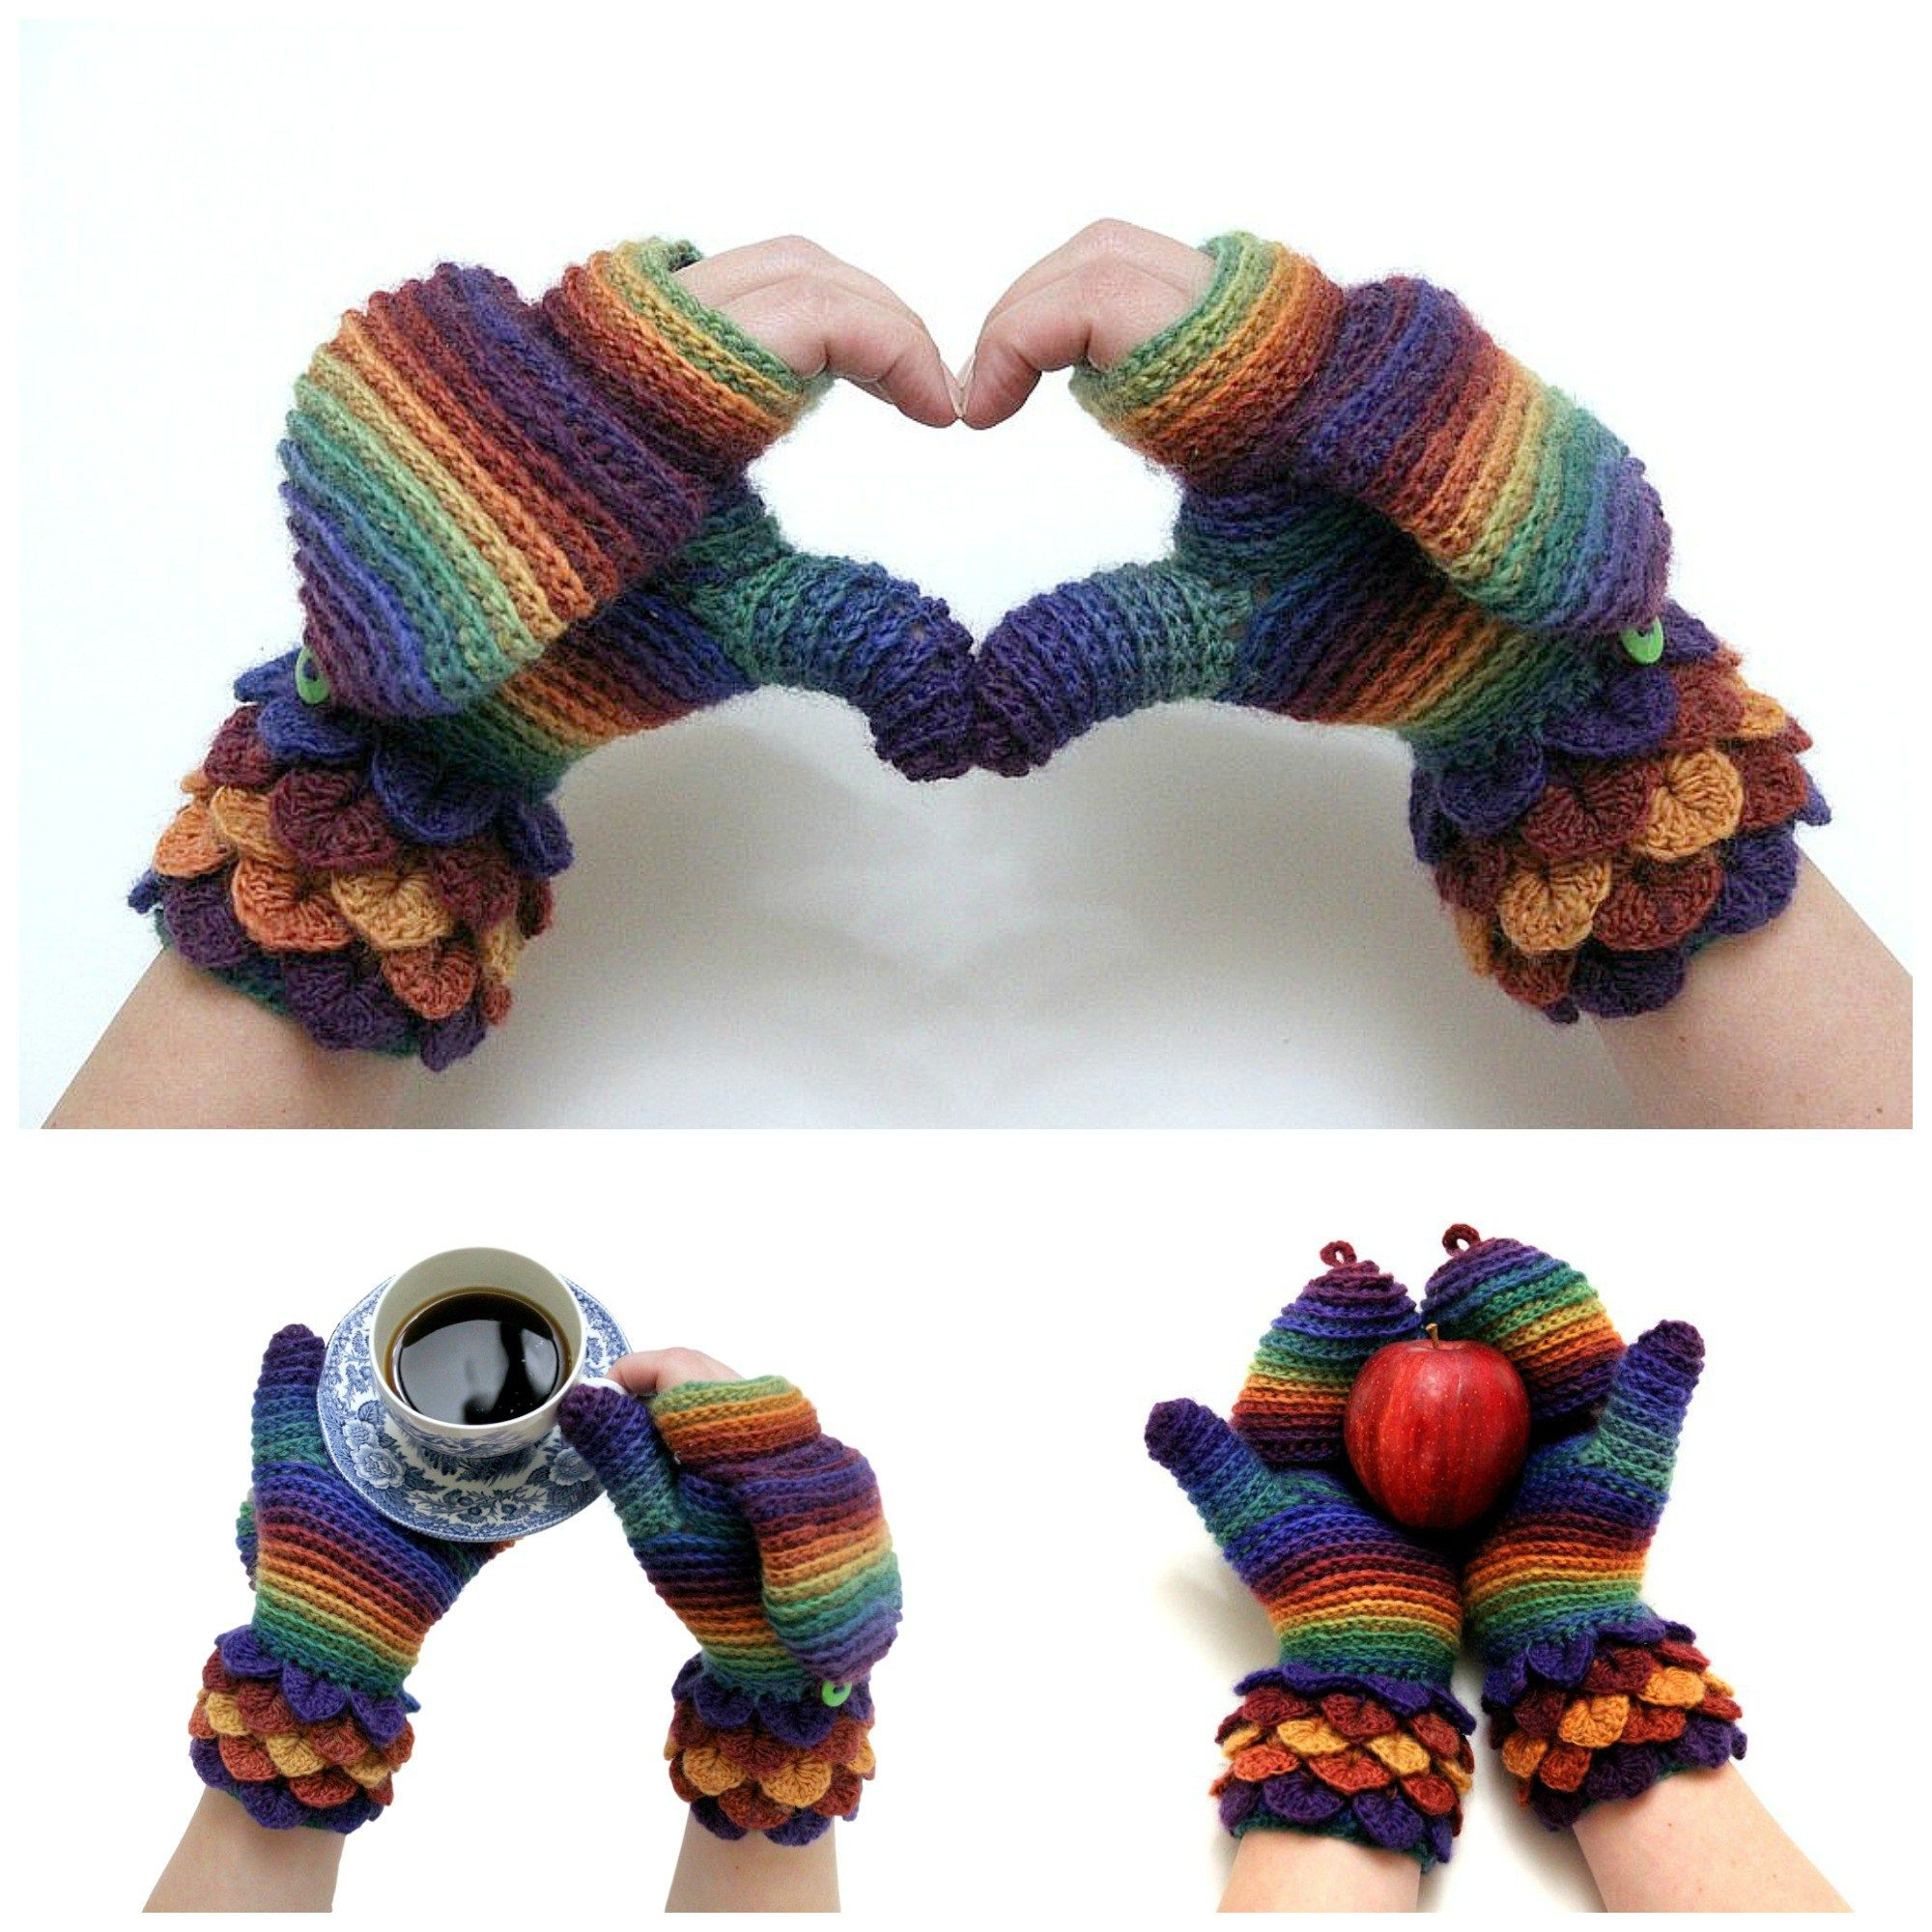 Changing the world, one stitch at a time... | 1. Crochet | Pinterest